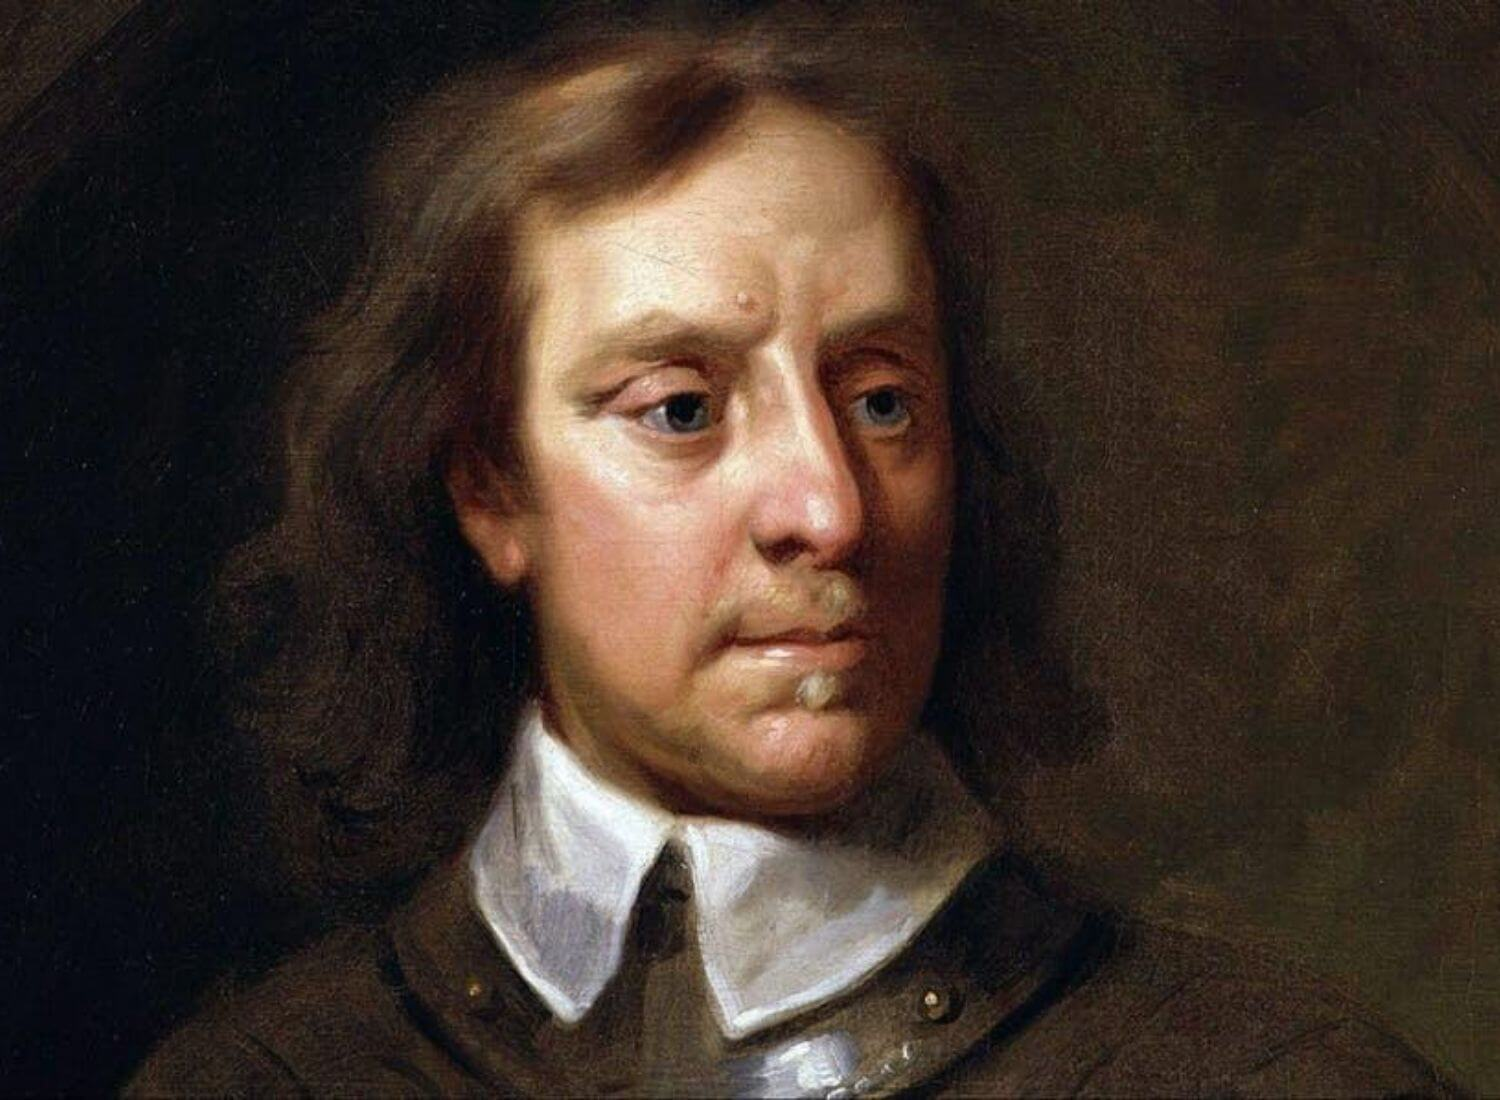 The Saga Behind The Head Of Oliver Cromwell: Most Remarkable And Controversial Figure